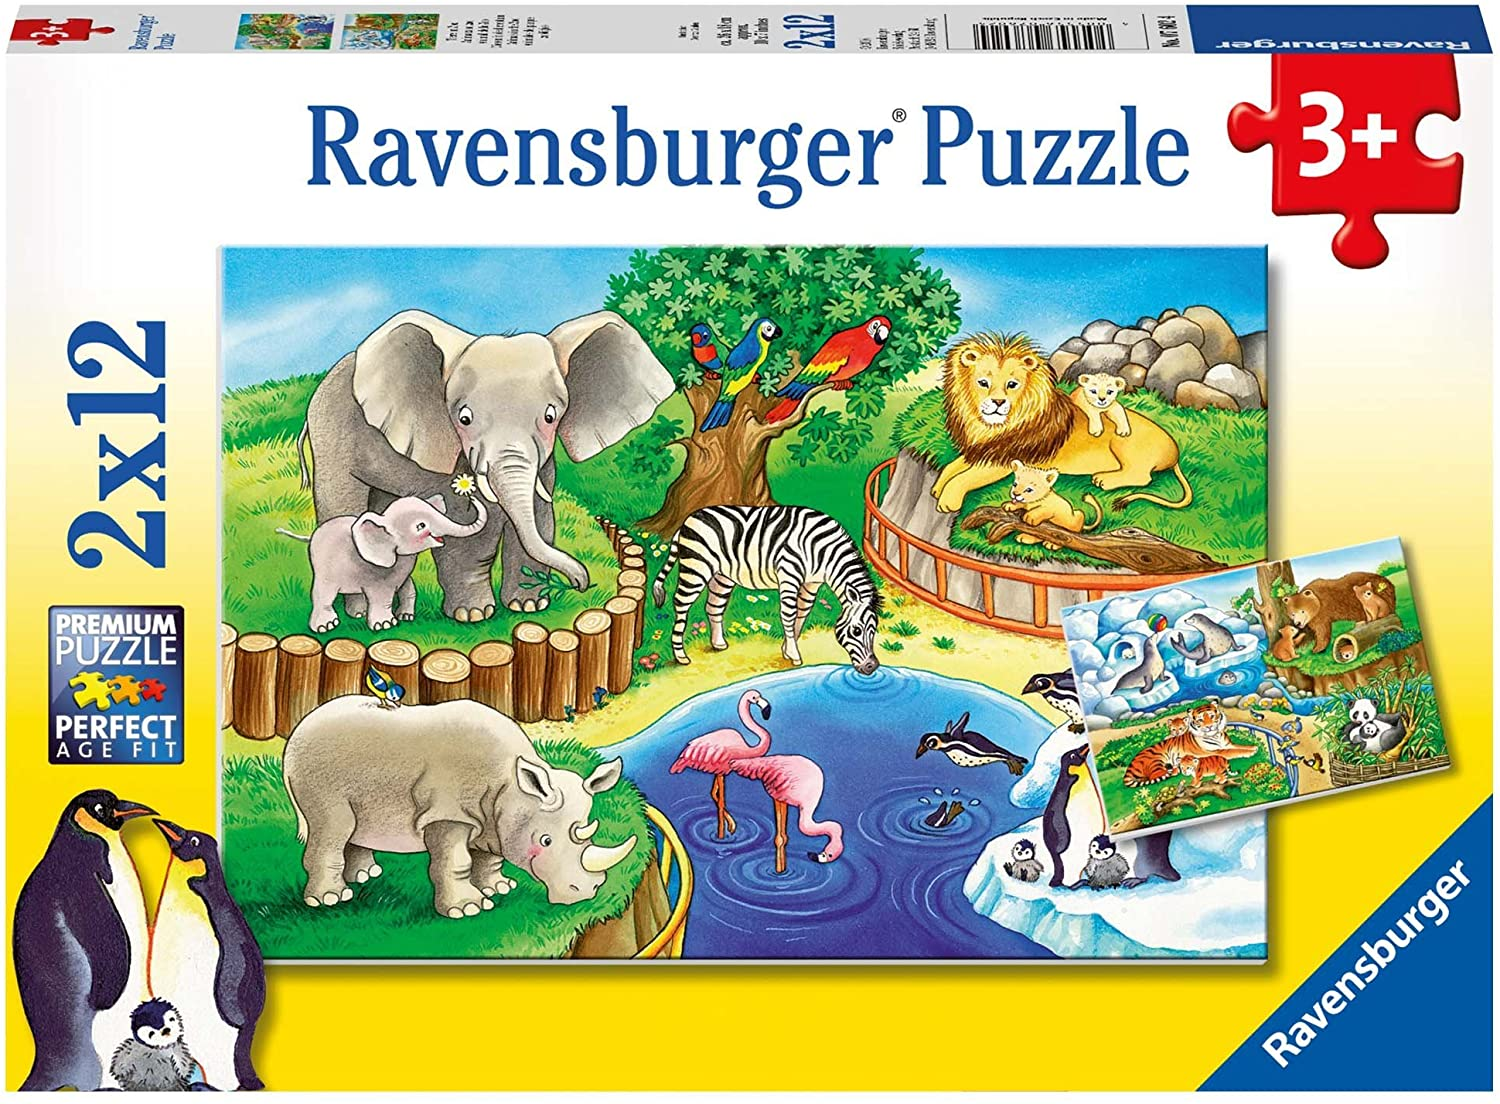 Ravensburger Puzzle Animals in the Zoo 2 x 12 Piece